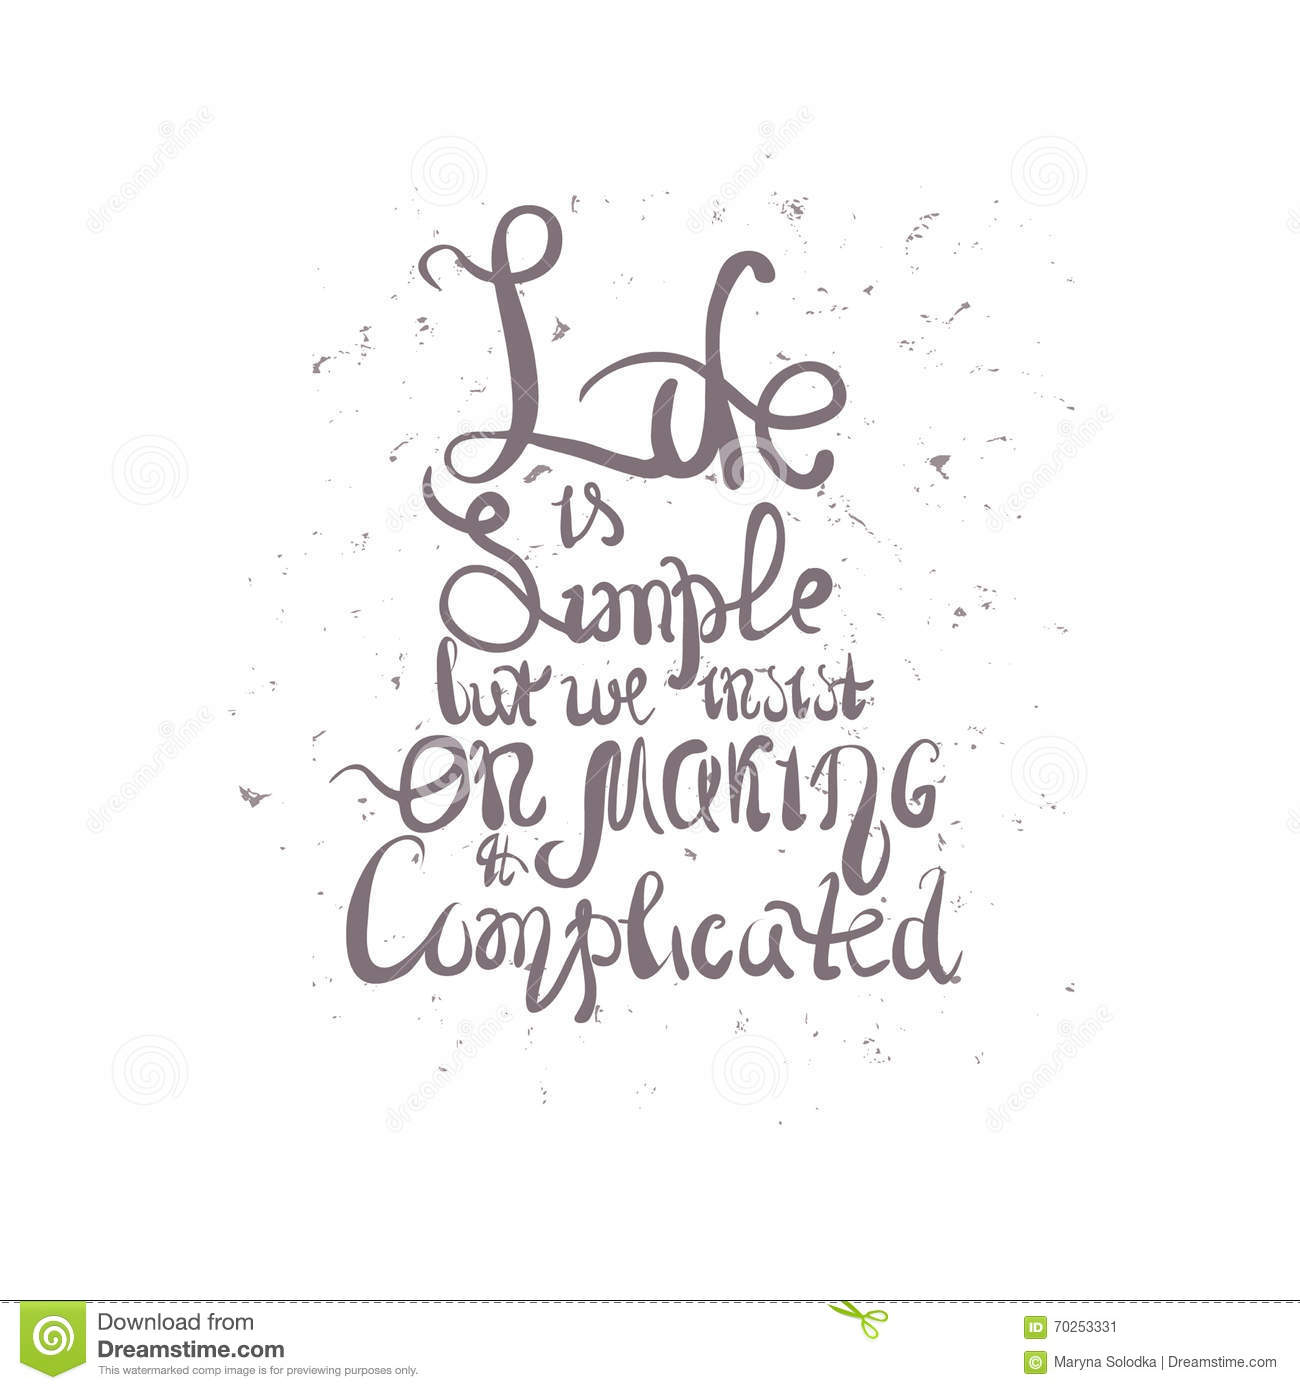 Vector illustration with hand drawn inscription - Life is simple but we insist on making it complicated.